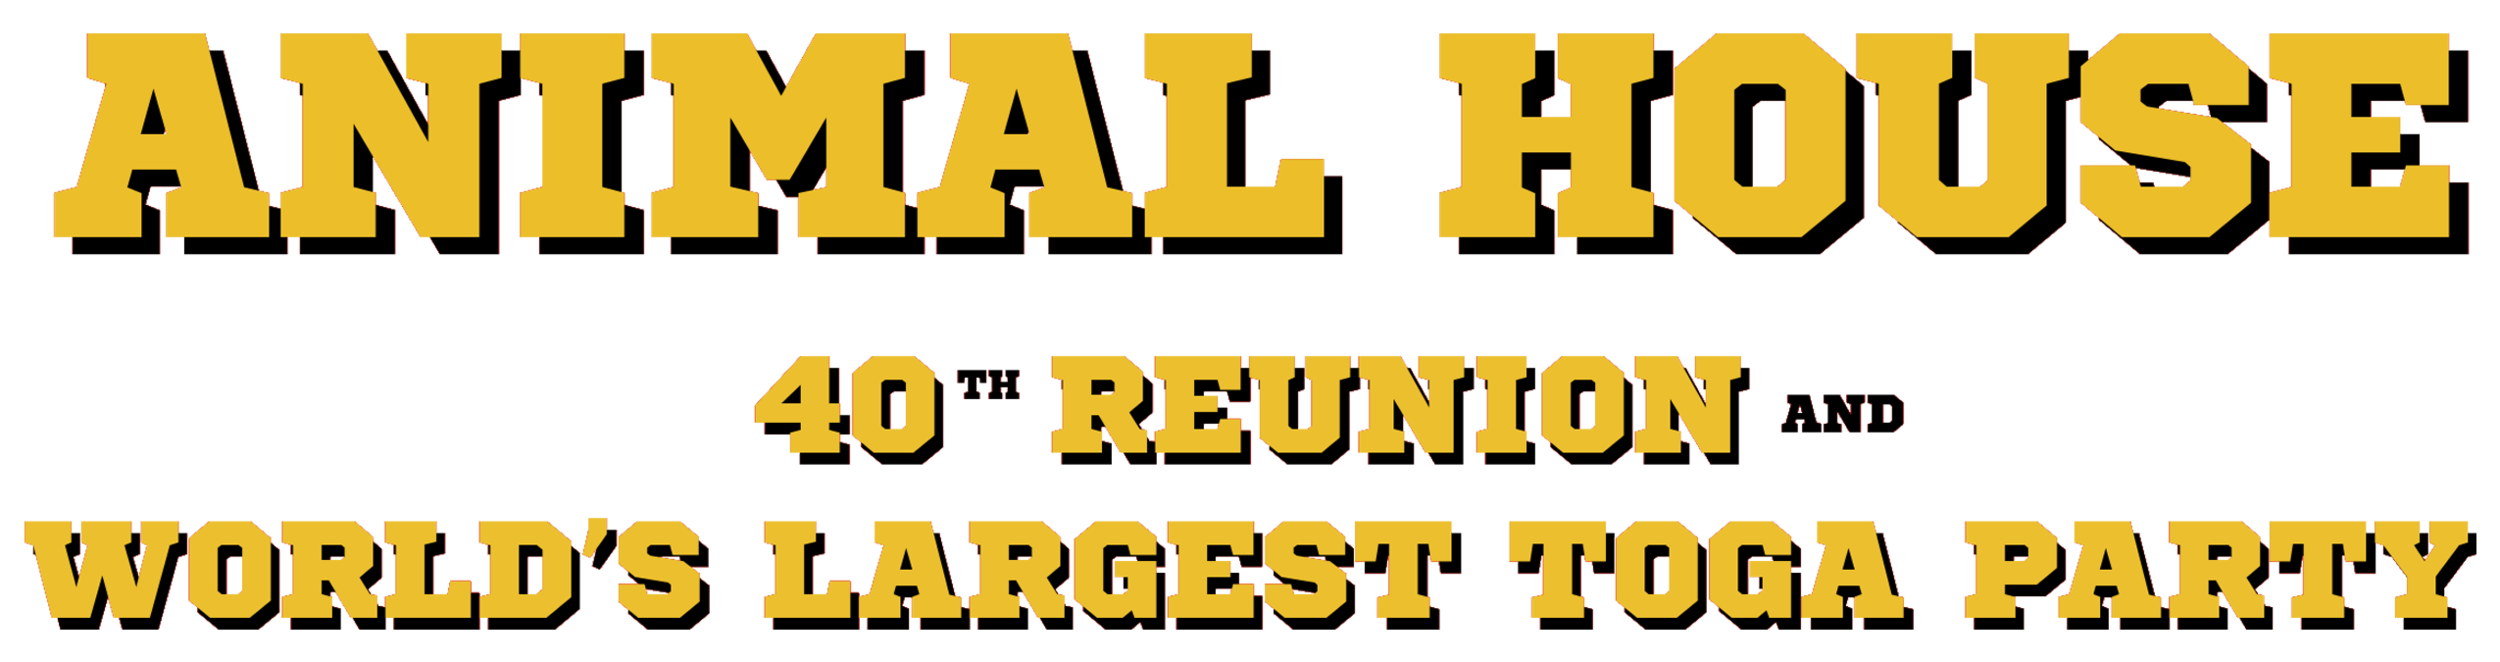 homepage title font.png